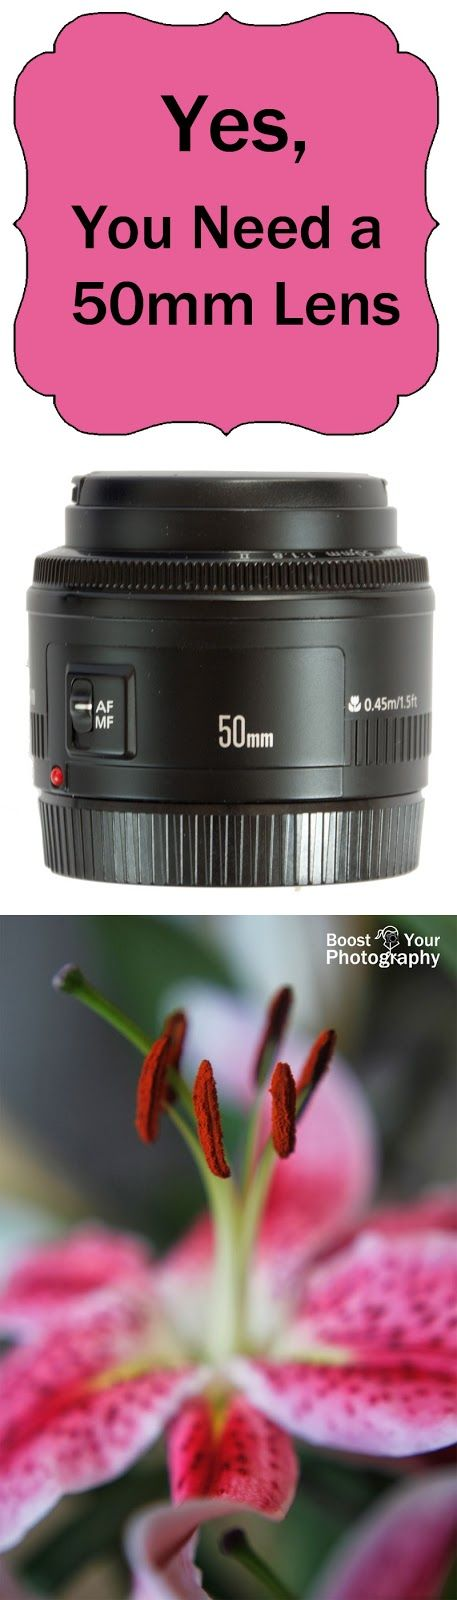 Yes, You Need an (inexpensive!) 50 mm Lens   Boost Your Photography